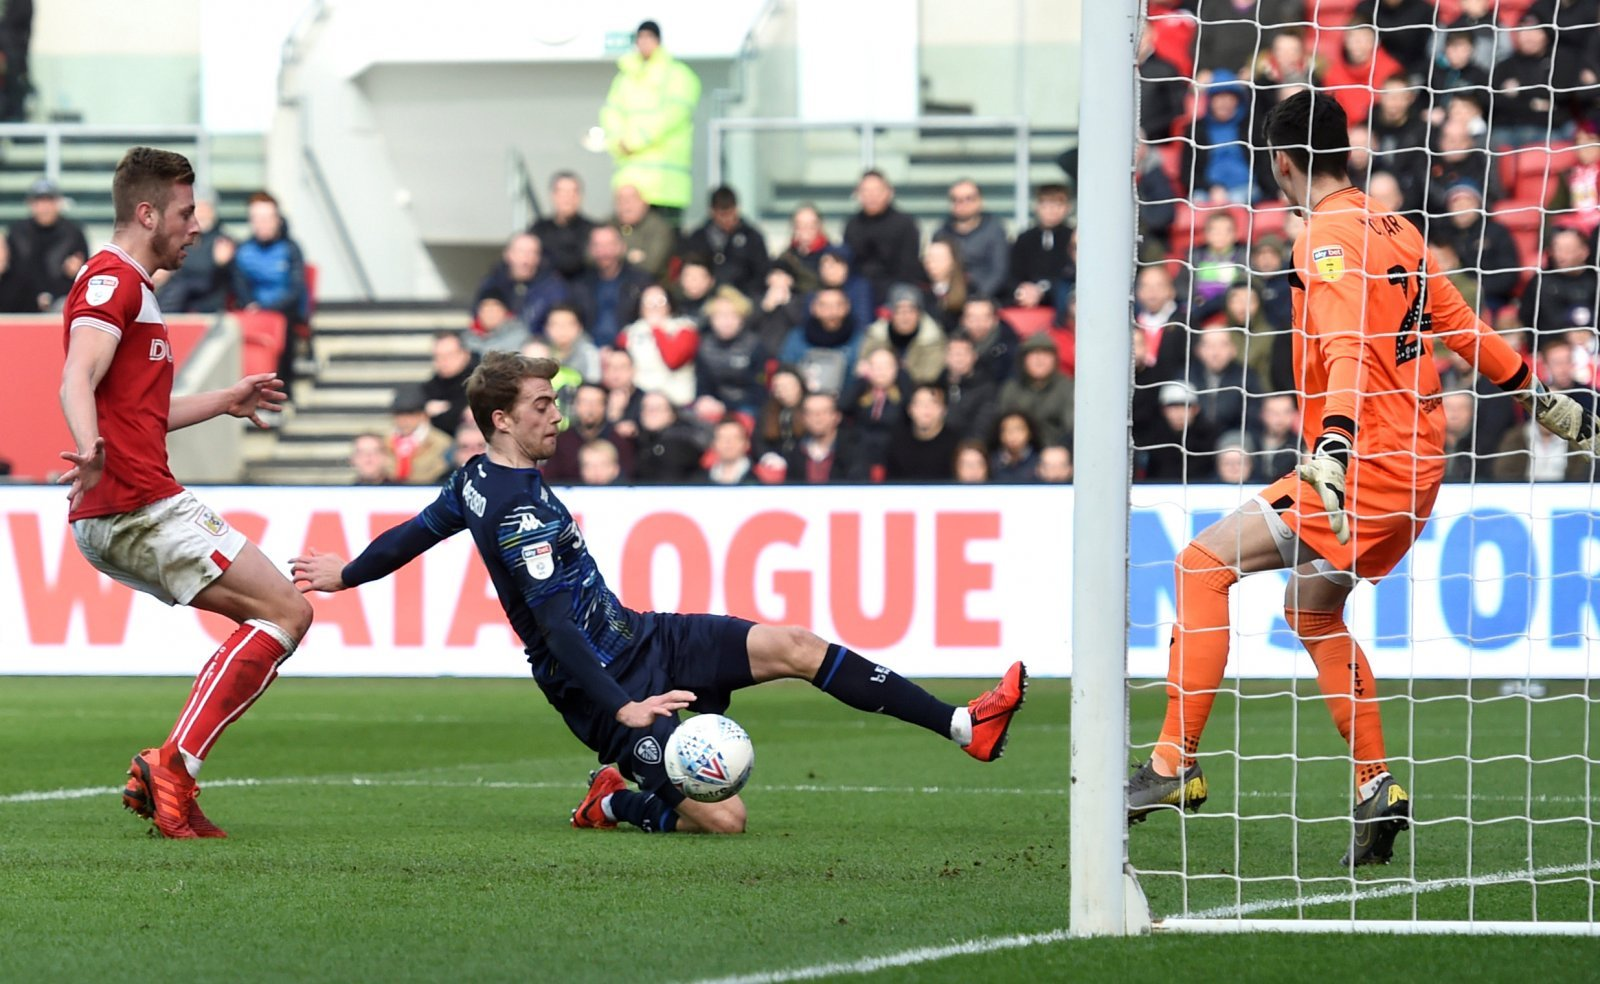 Leeds United: Bielsa's side need to more clinical in final four Championship clashes